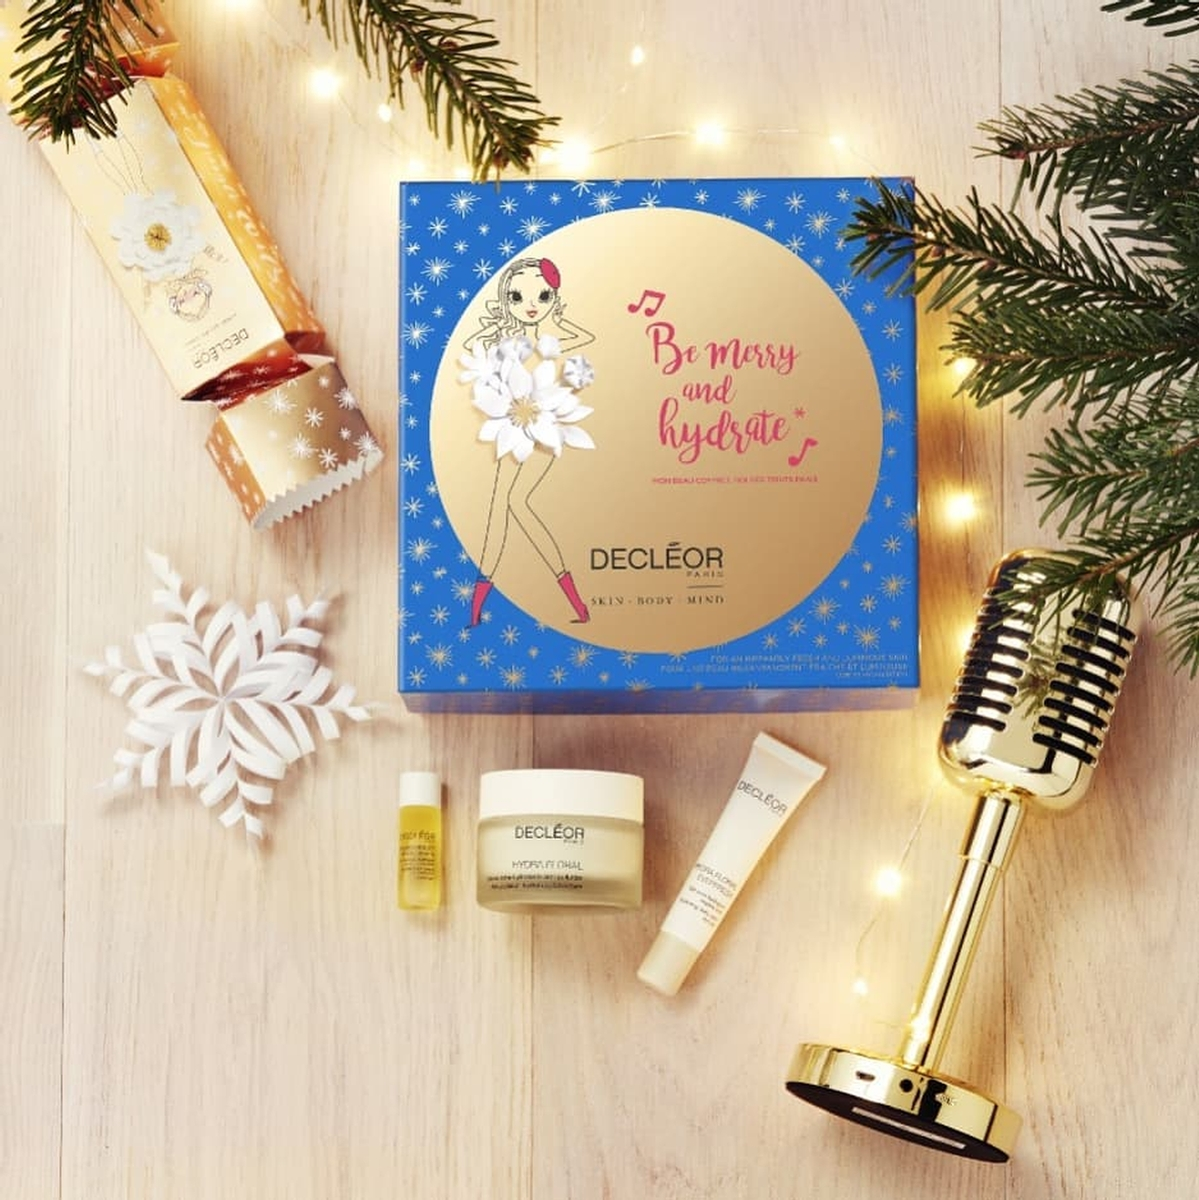 Decleor Christmas Gifts